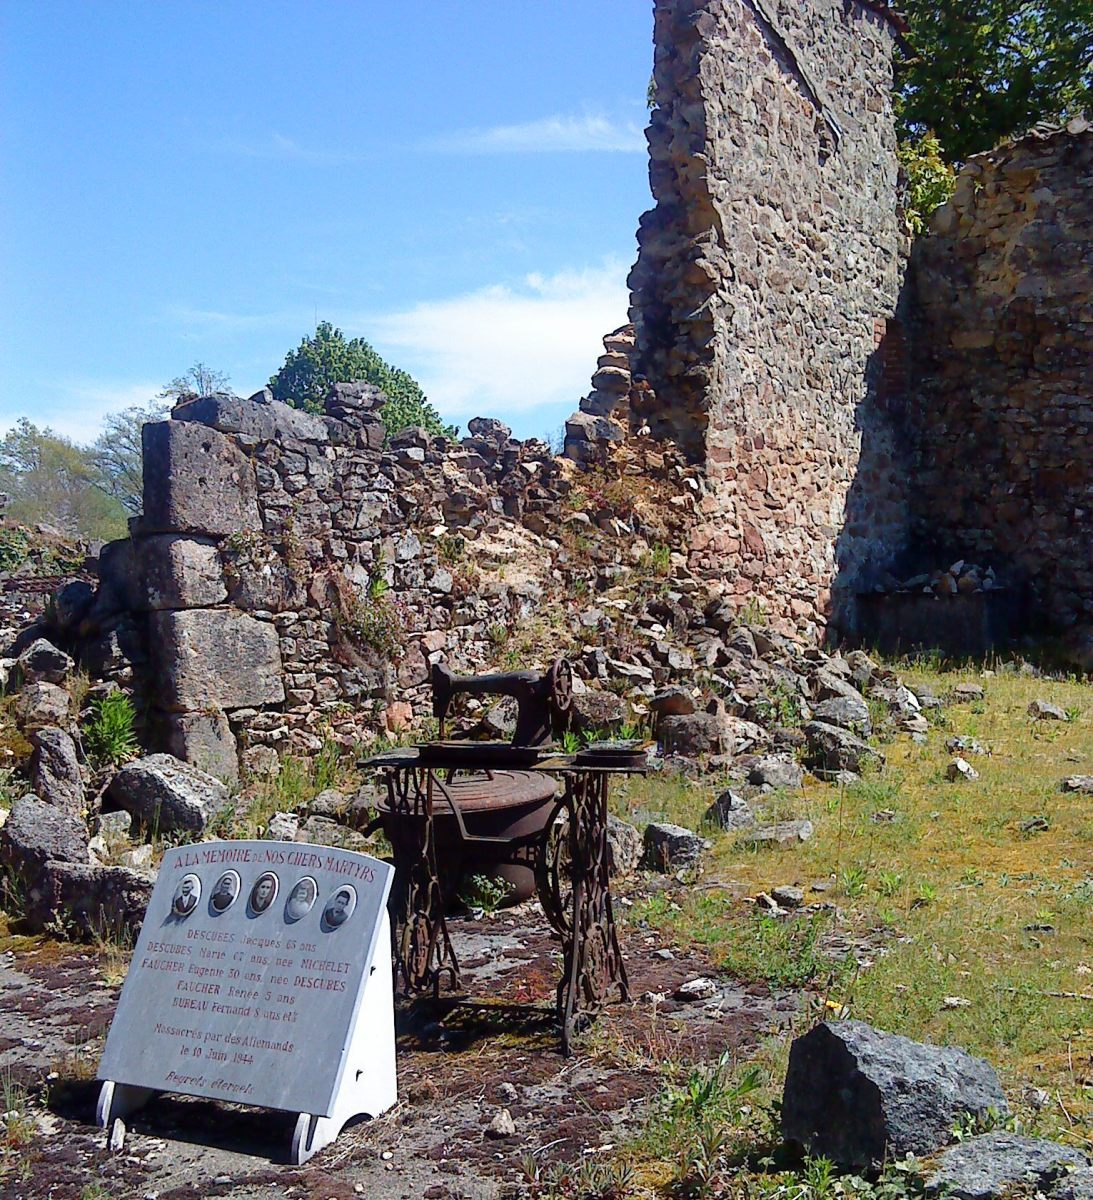 Oradour-sur-Glane. A whole family wiped out. Photographs and plaque with sewing machine and table.